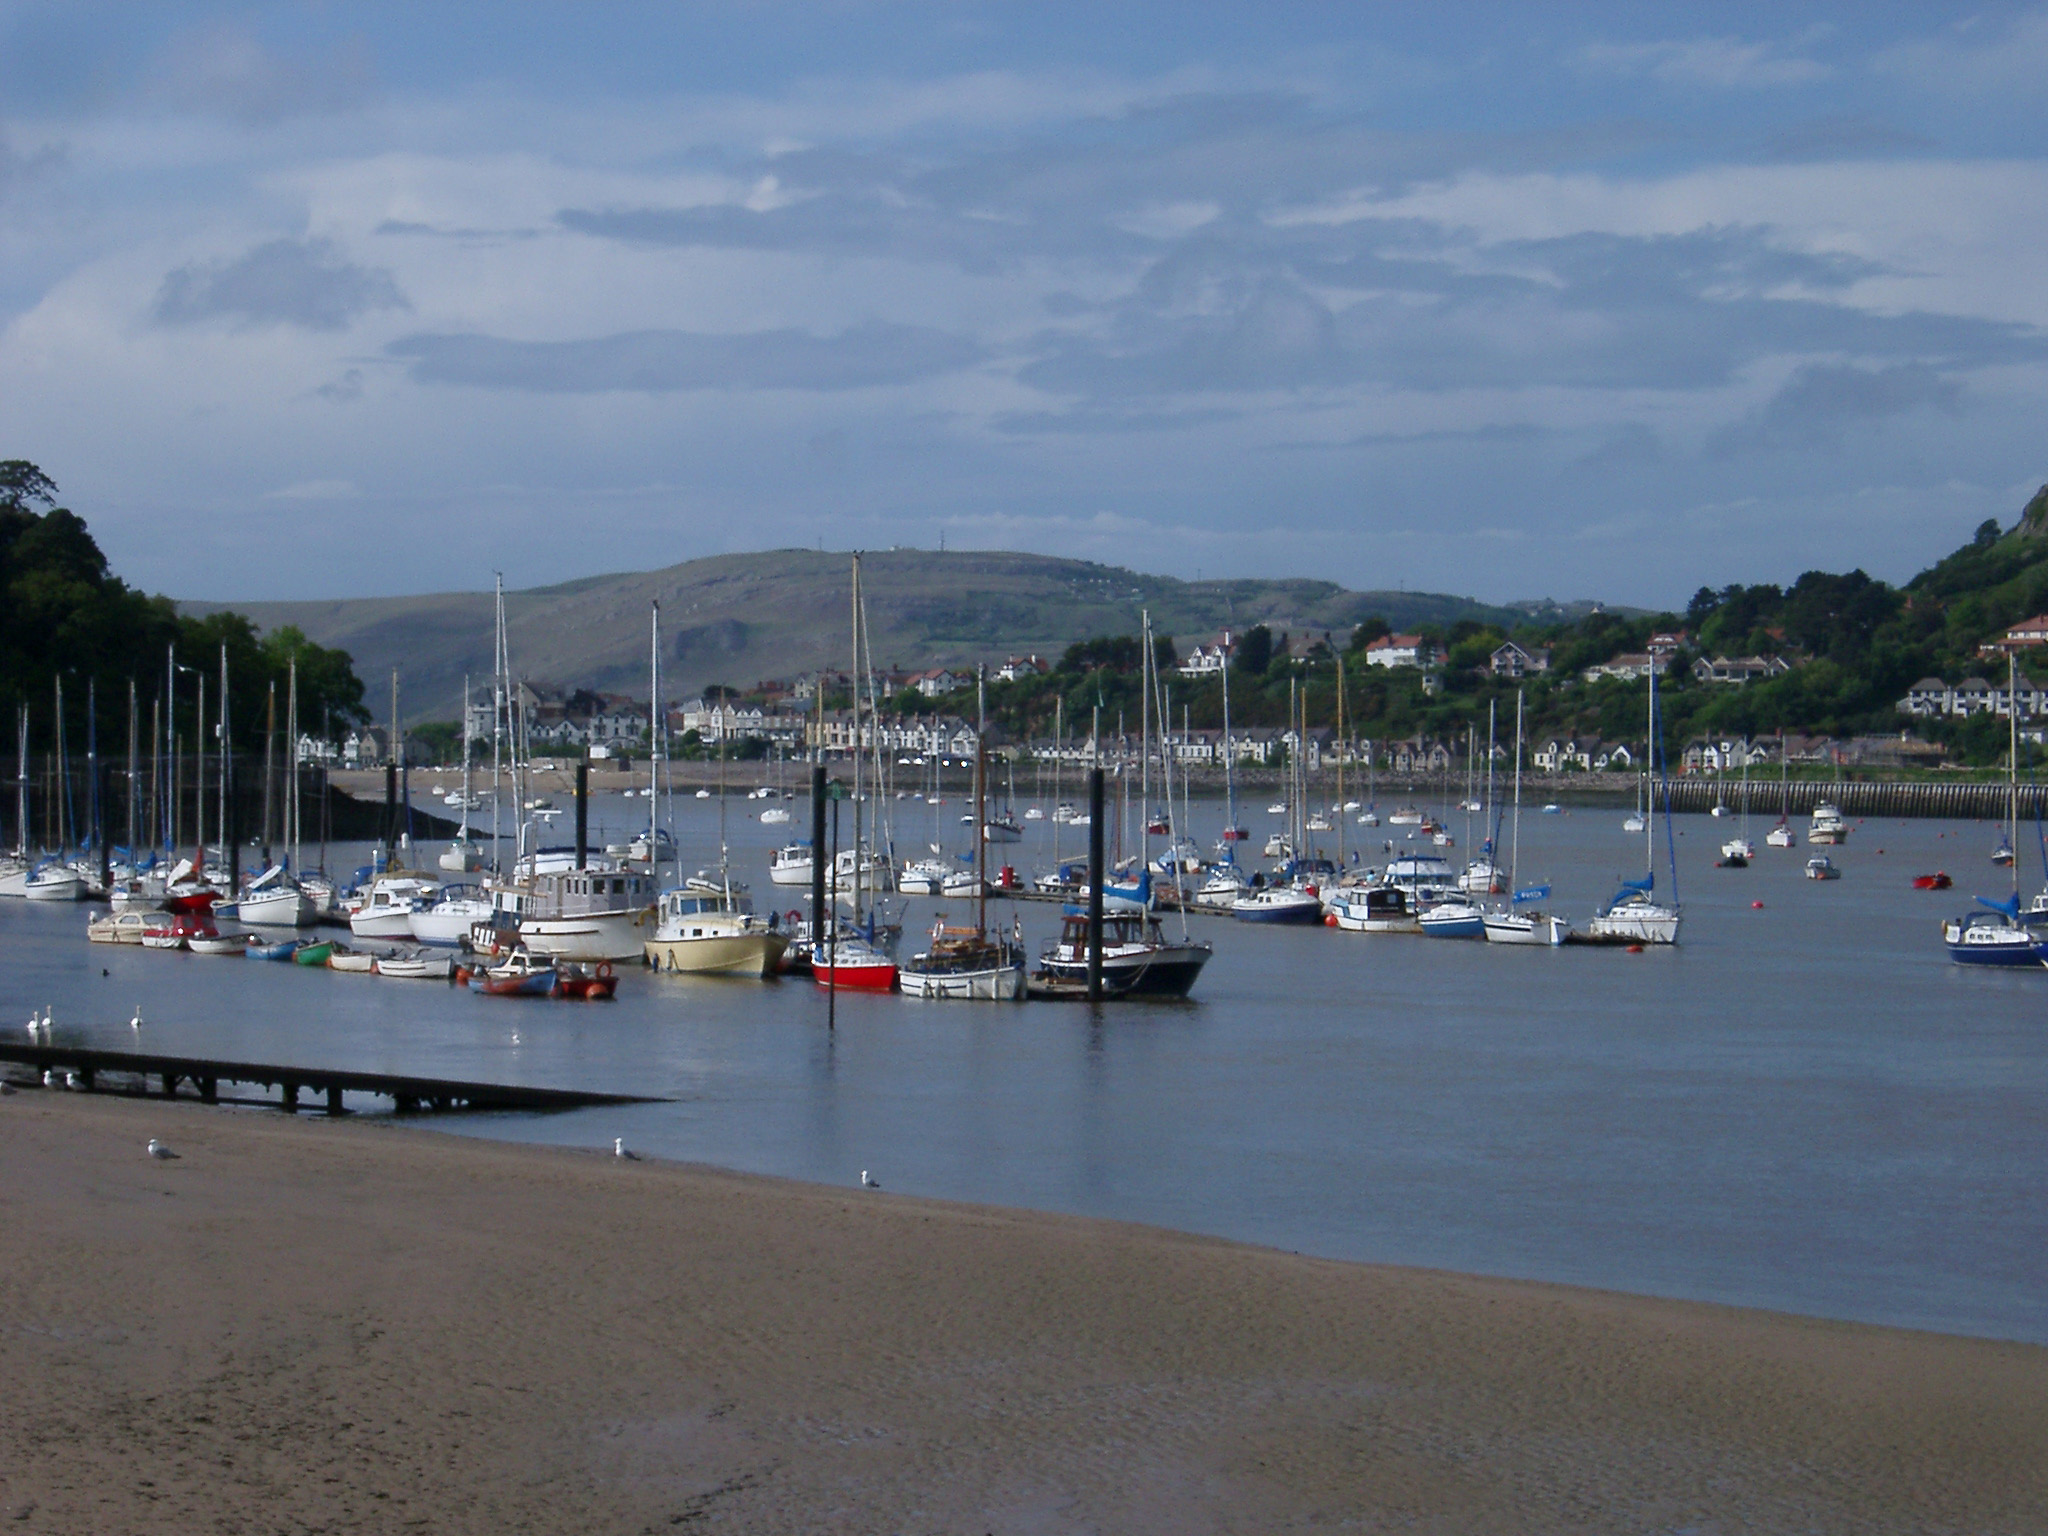 Fishing and pleasure boats moored in the sheltered water of the estuary on the Conway River , Wales